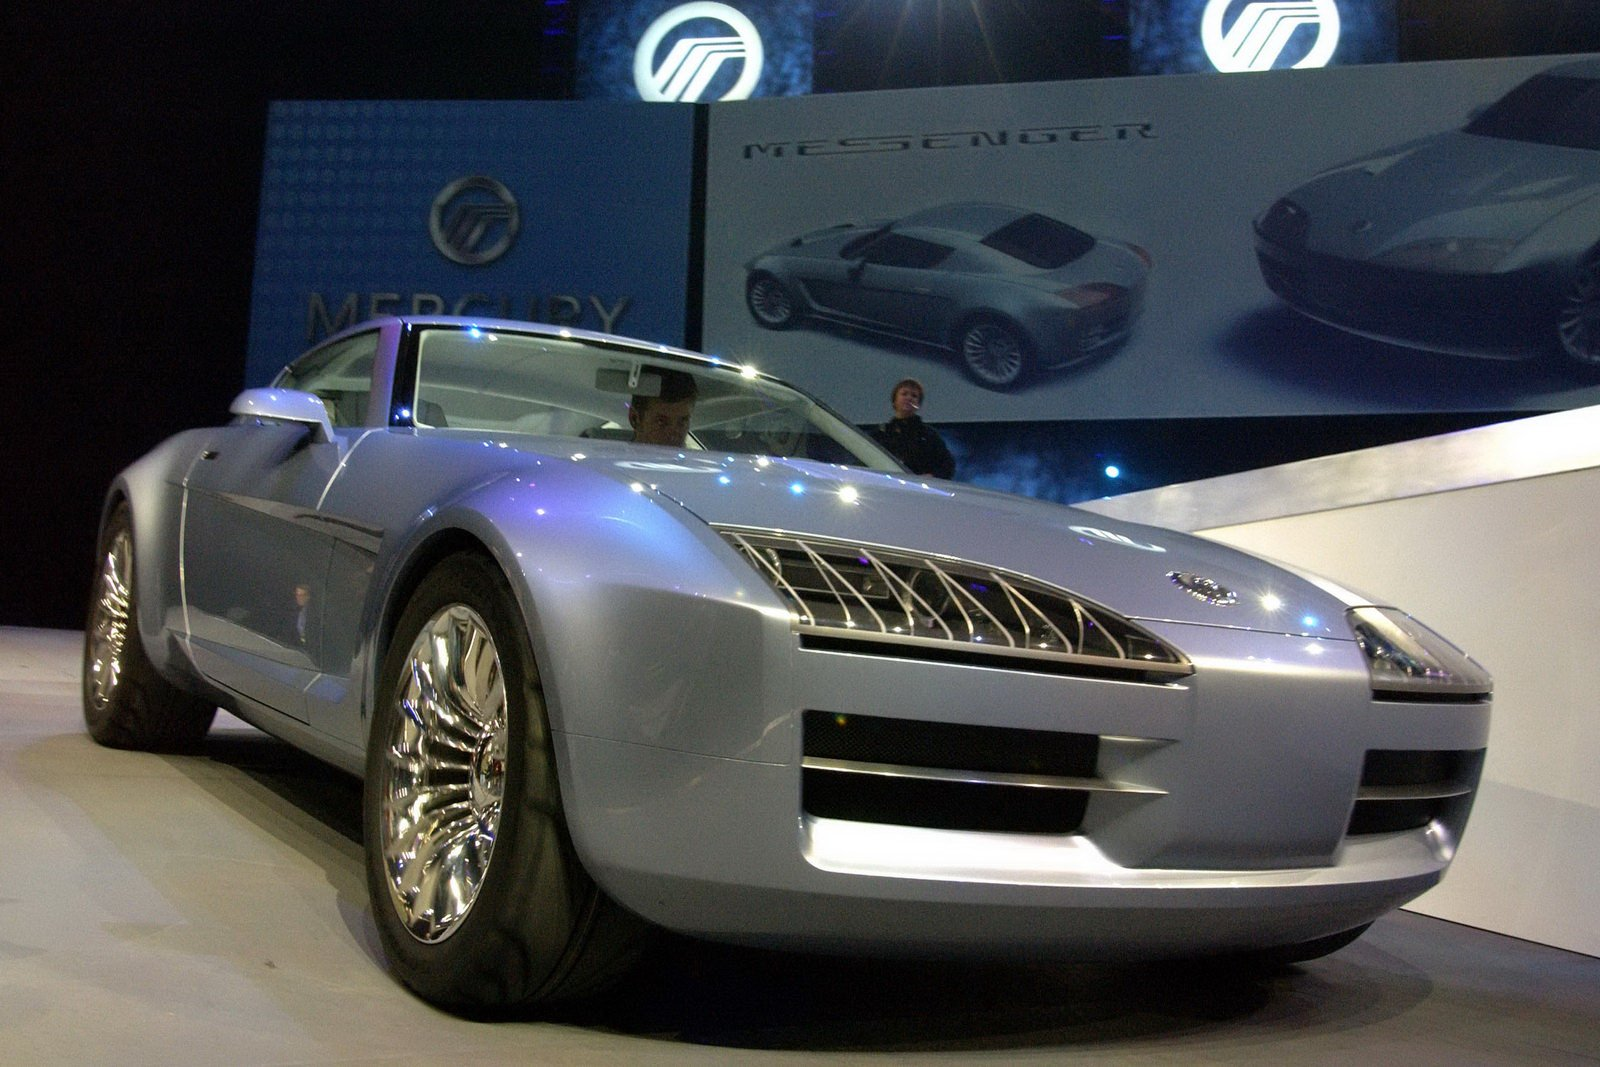 Latest Mercury S 2003 Messenger Sports Coupe Concept Also Up For Free Download